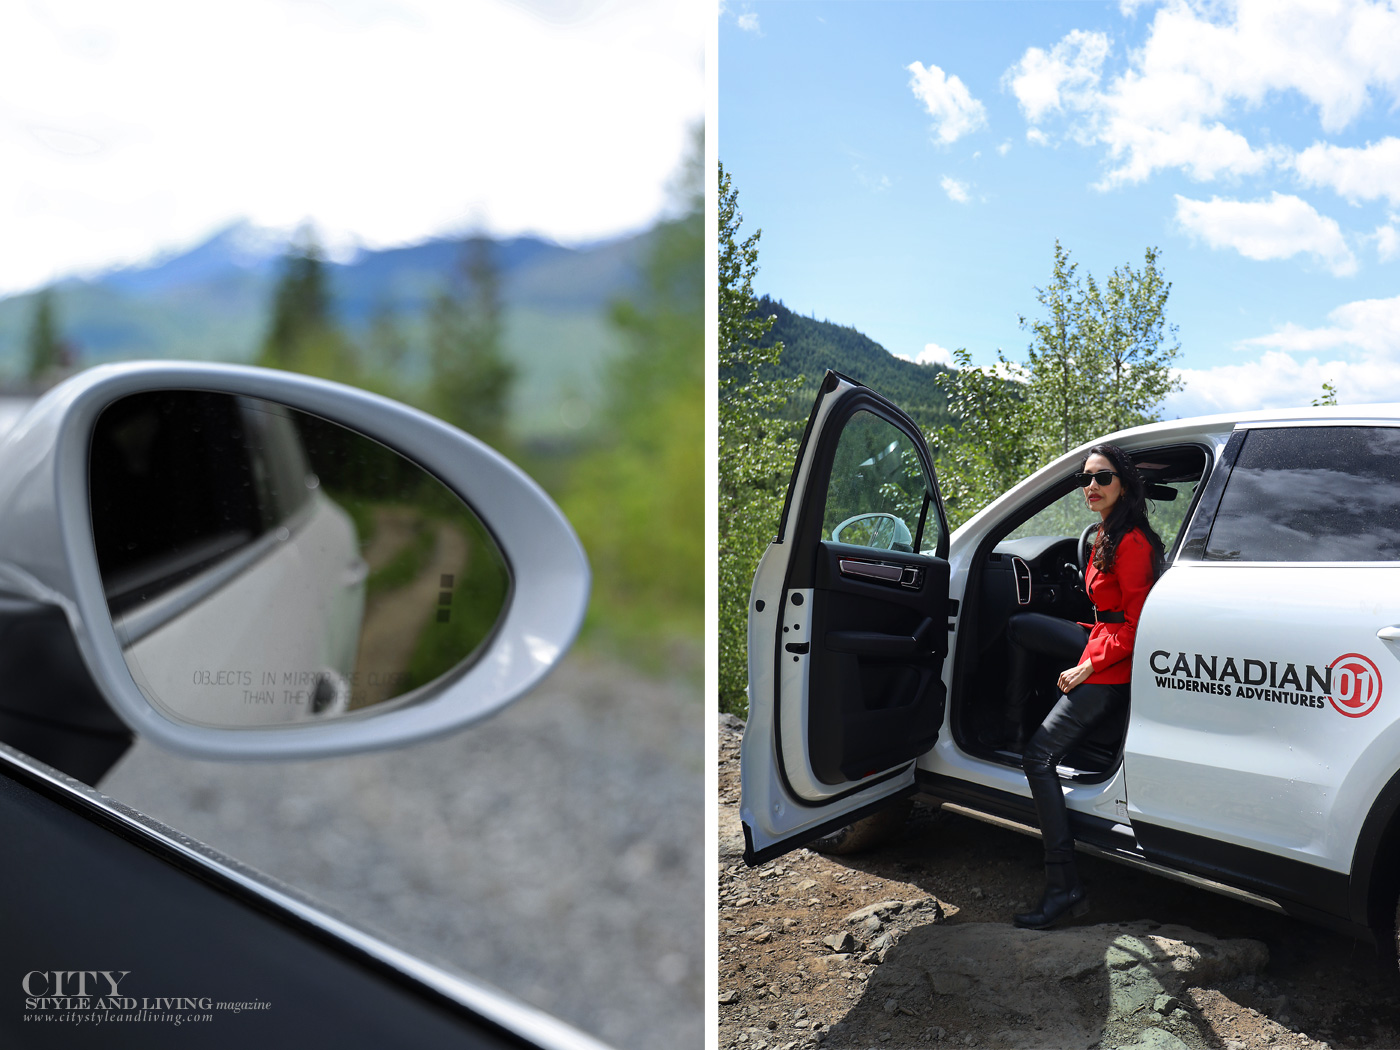 City Style and Living Magazine Summer 2019 Porsche Experience Whistler Cayenne S rear view mirror and getting out of vehicle